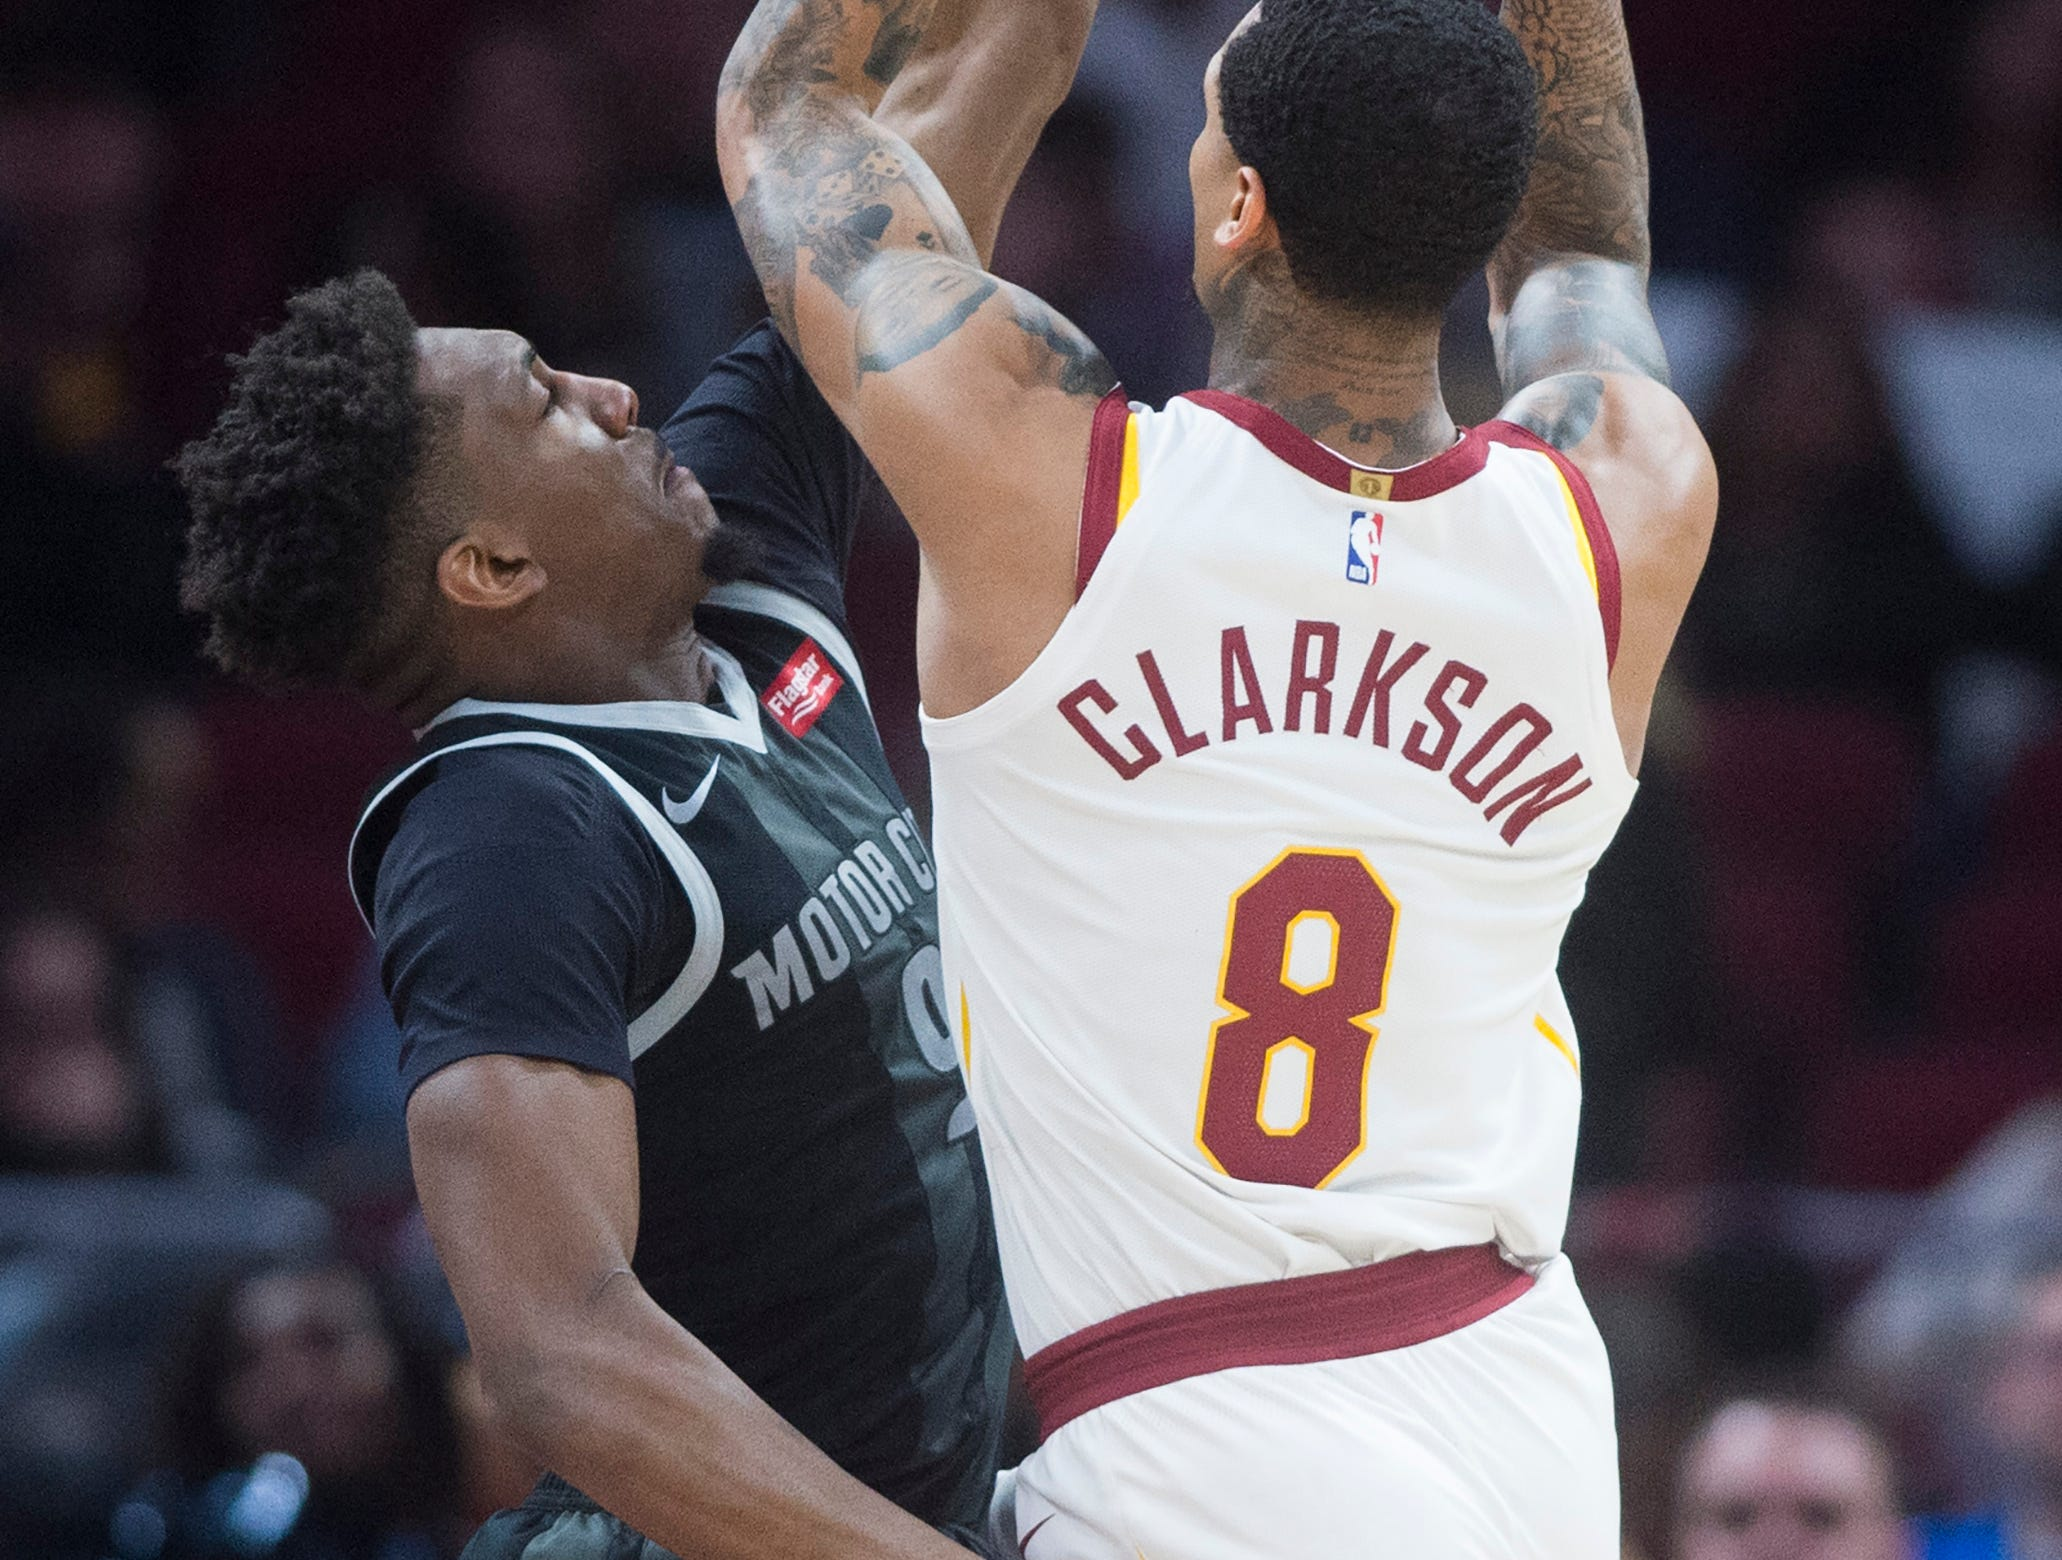 Detroit Pistons' guard Langston Galloway defends against Cleveland Cavaliers' guard Jordan Clarkson in the second half of an NBA basketball game.